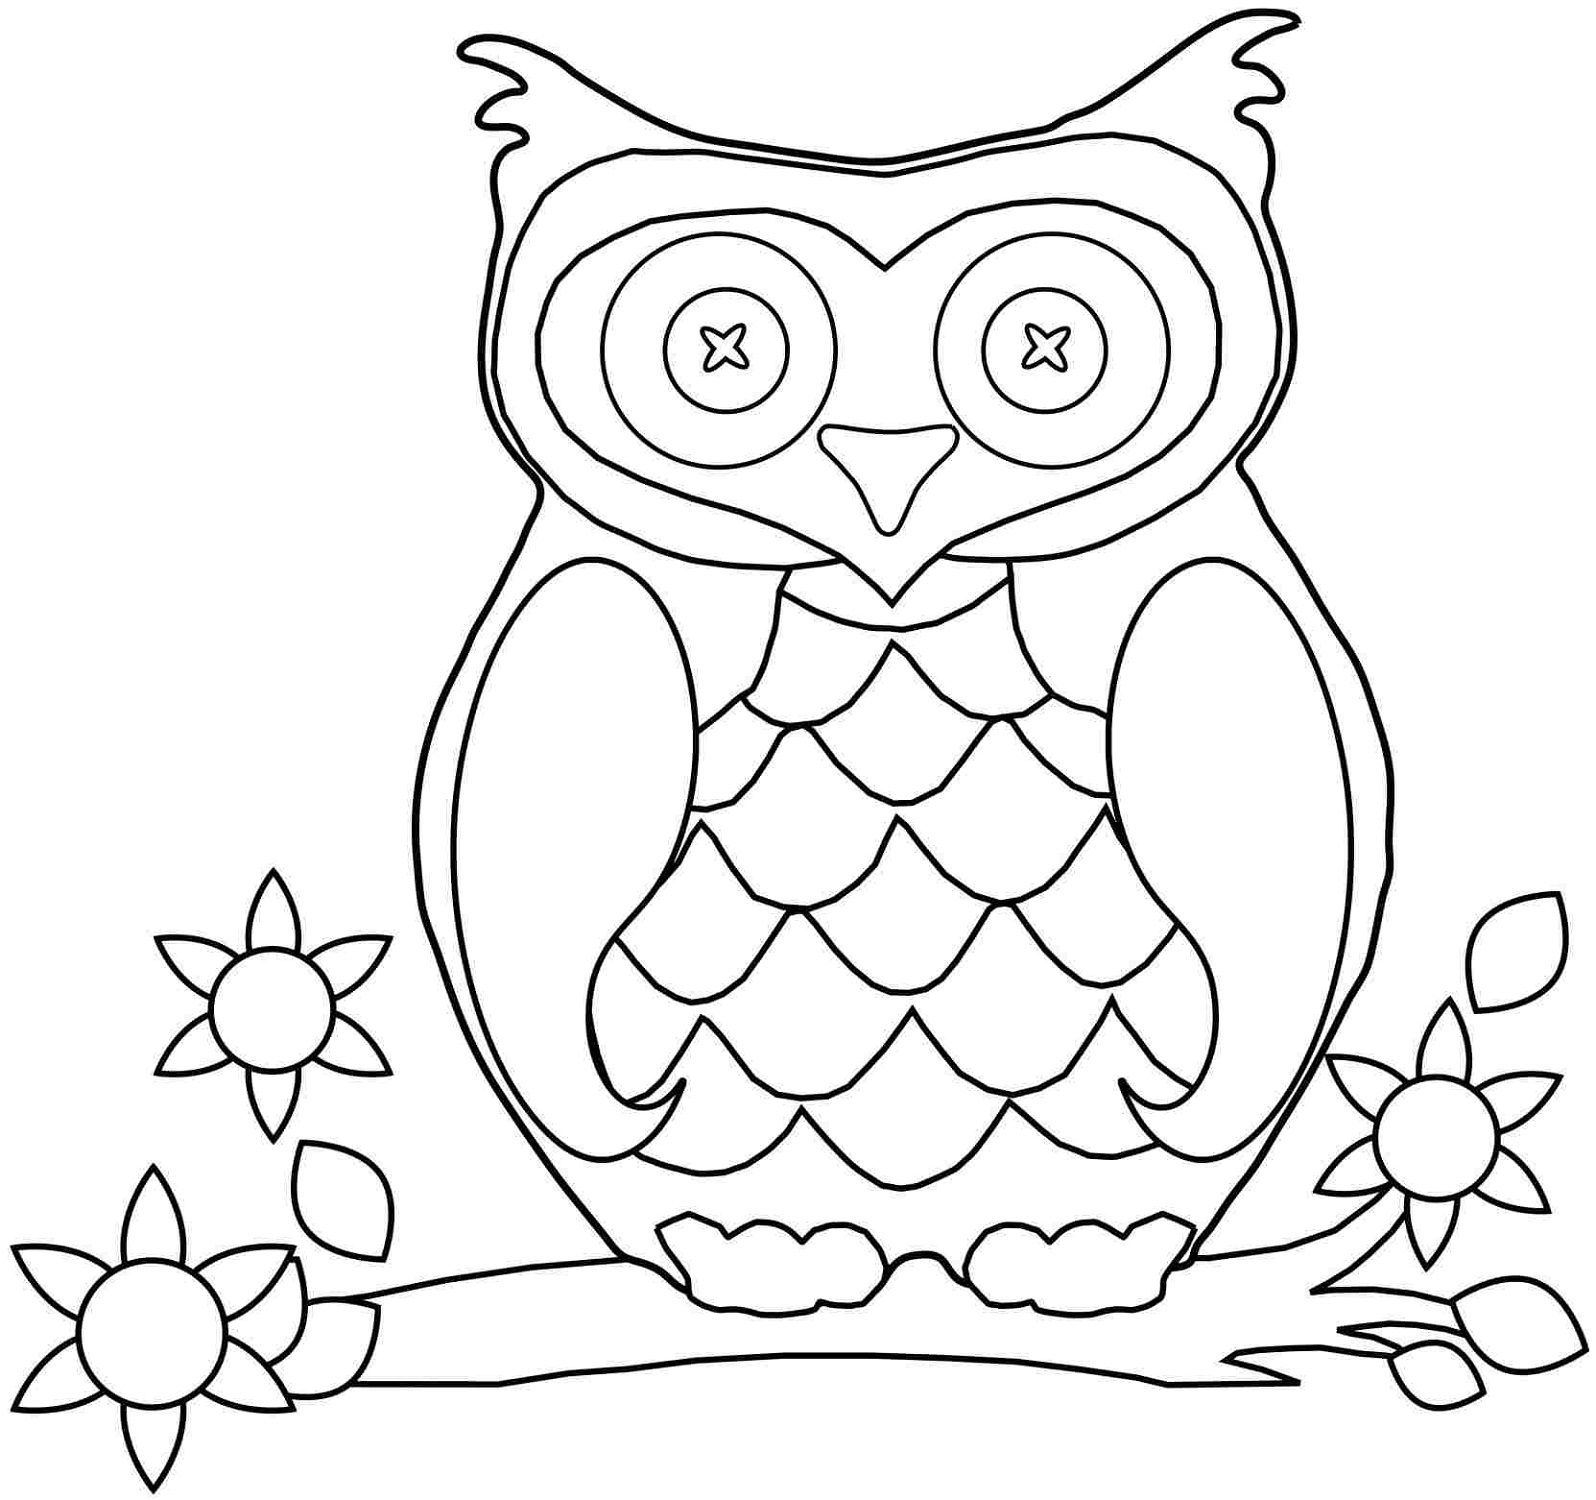 Print Off Coloring Pages Children